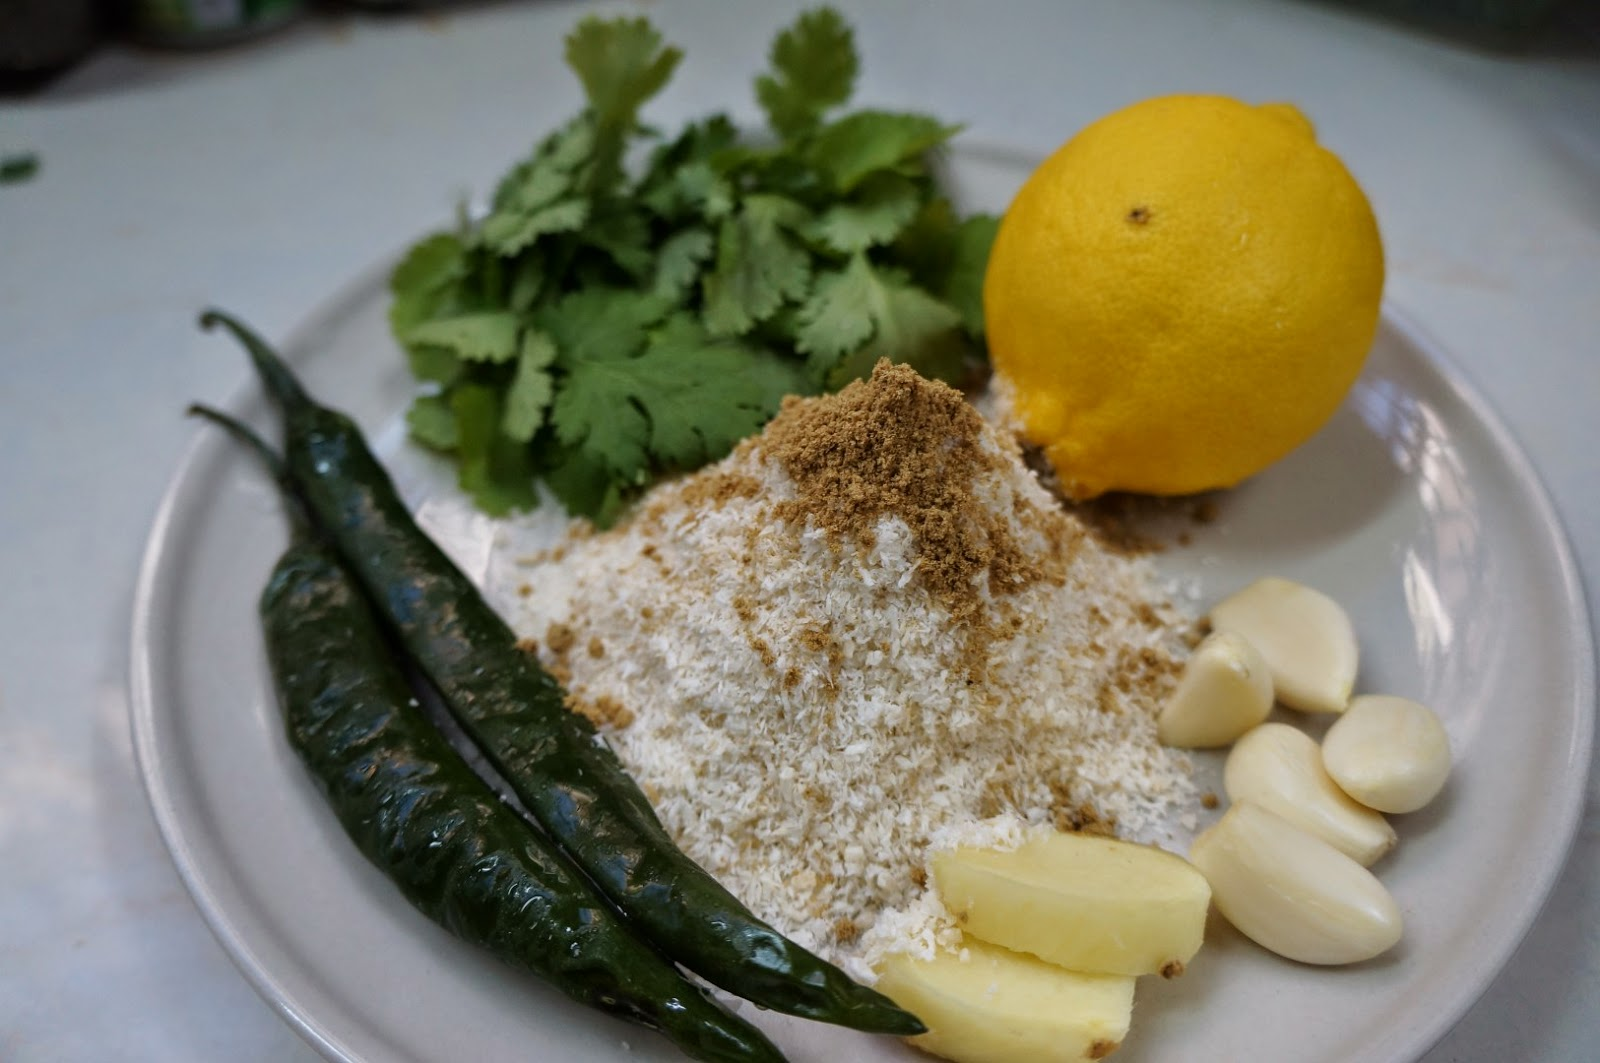 Ingredients for Coconut and Coriander Fish